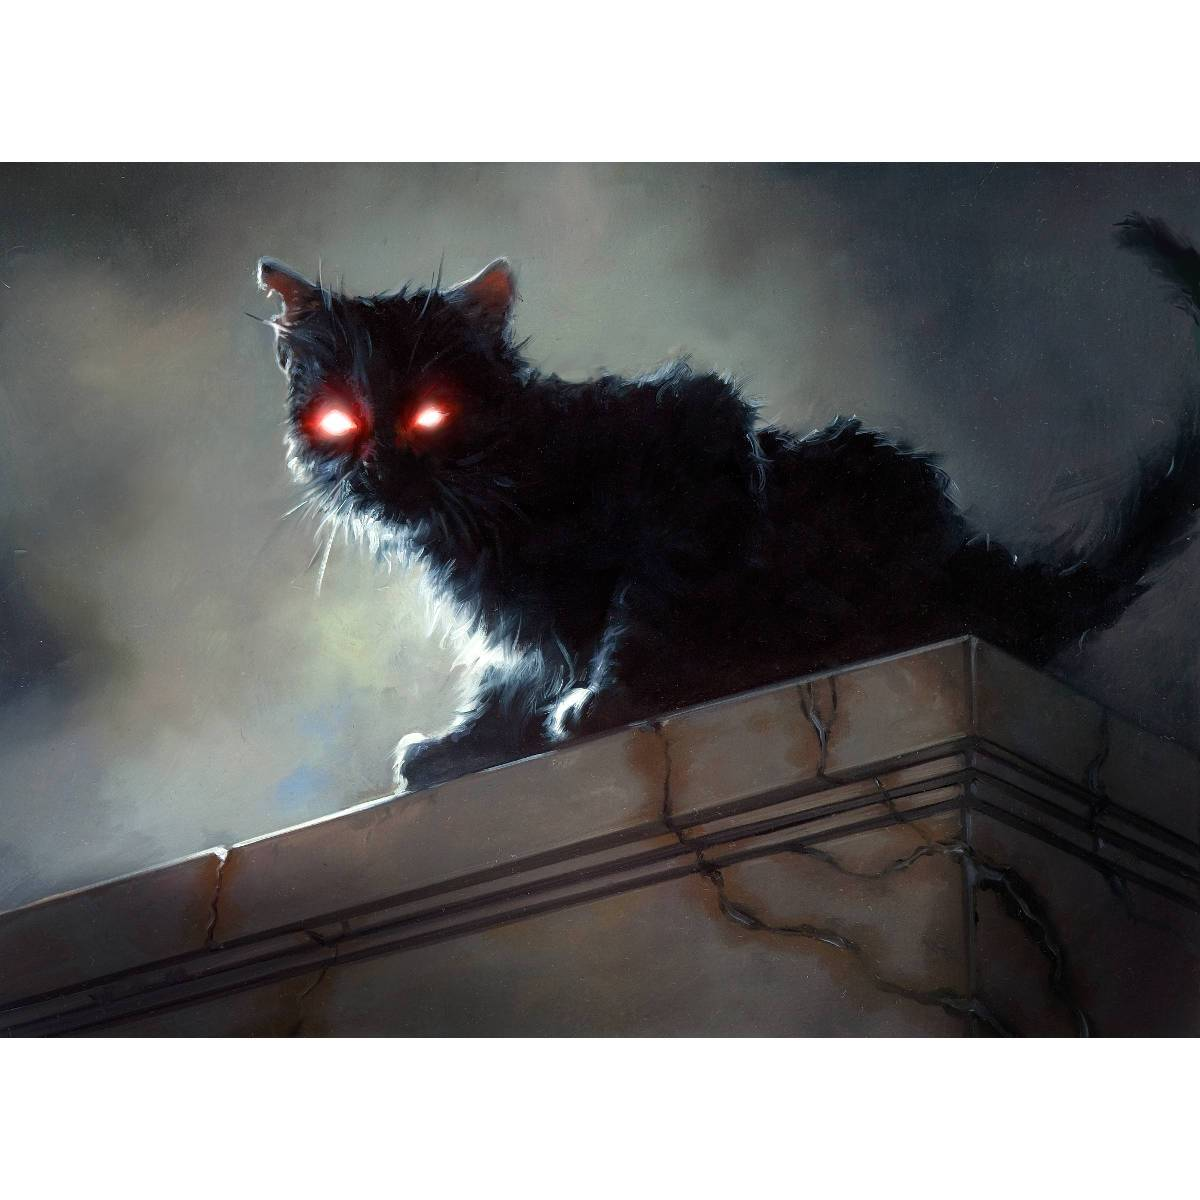 Black Cat Print - Print - Original Magic Art - Accessories for Magic the Gathering and other card games